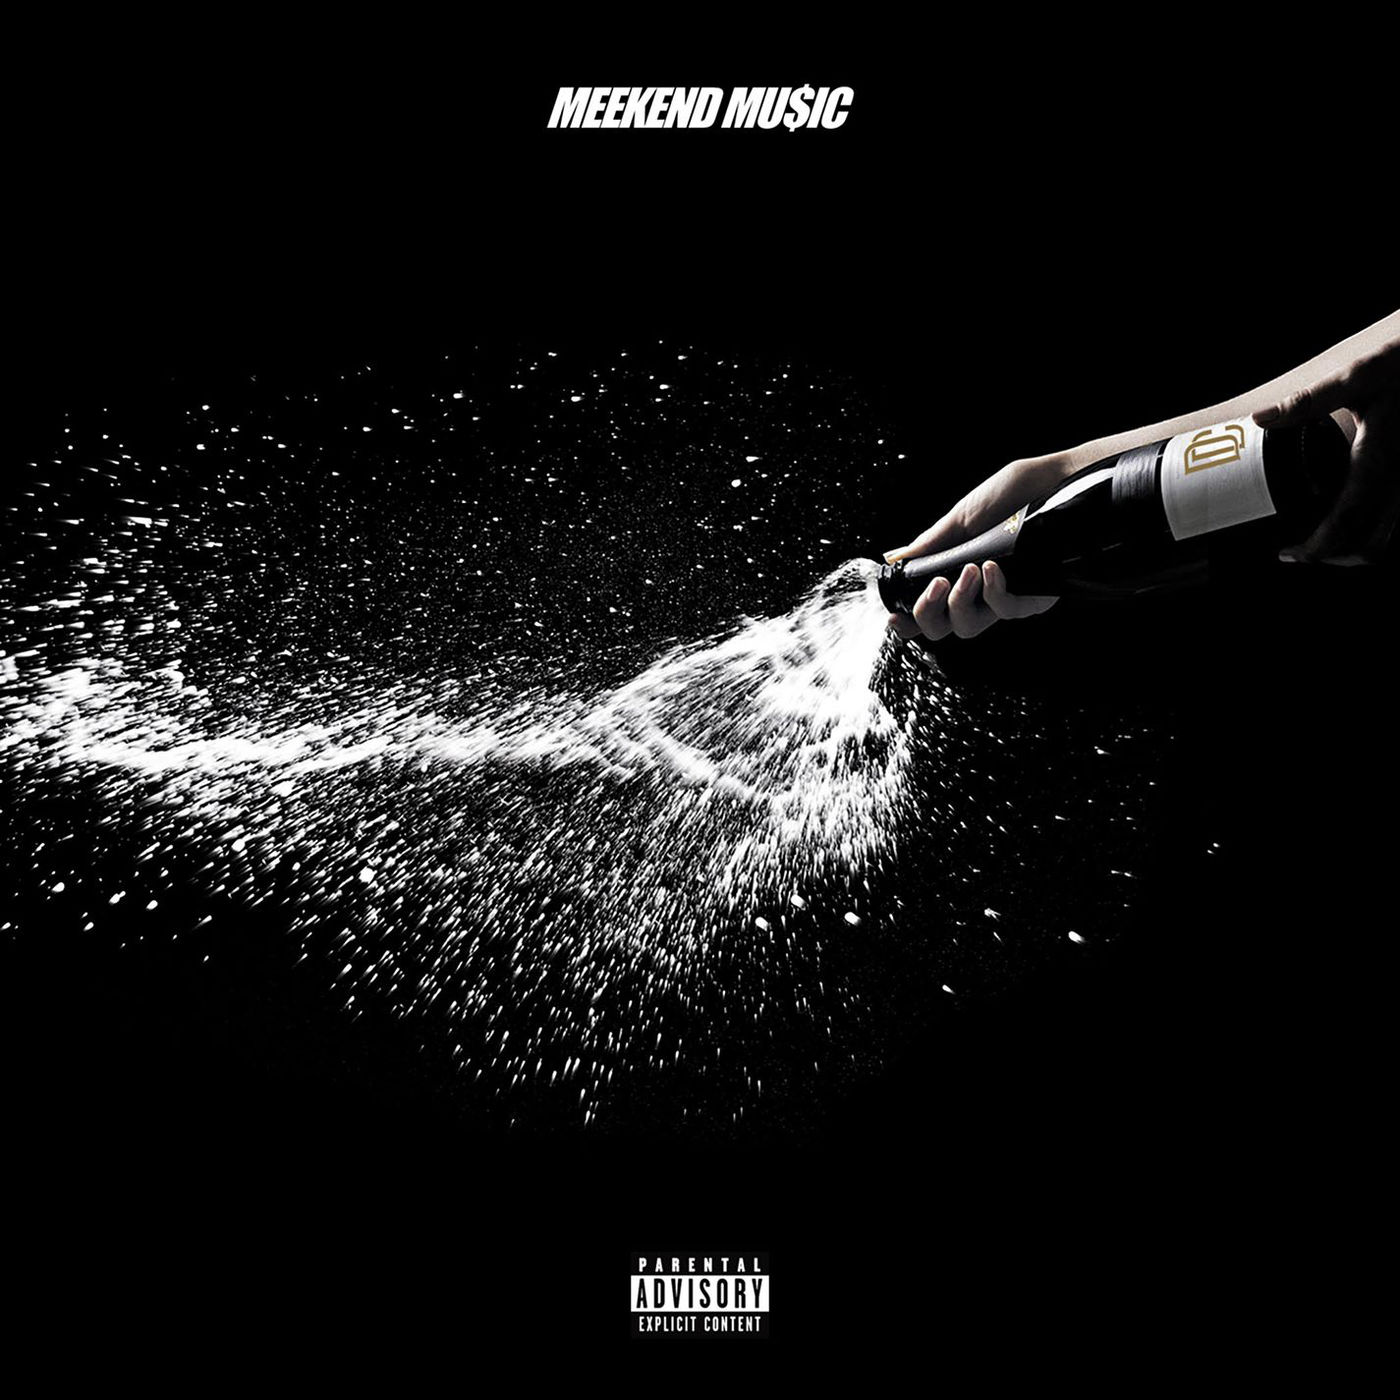 Download Meek Mill Meekend Muic Single Itunes Plus Aac M4a